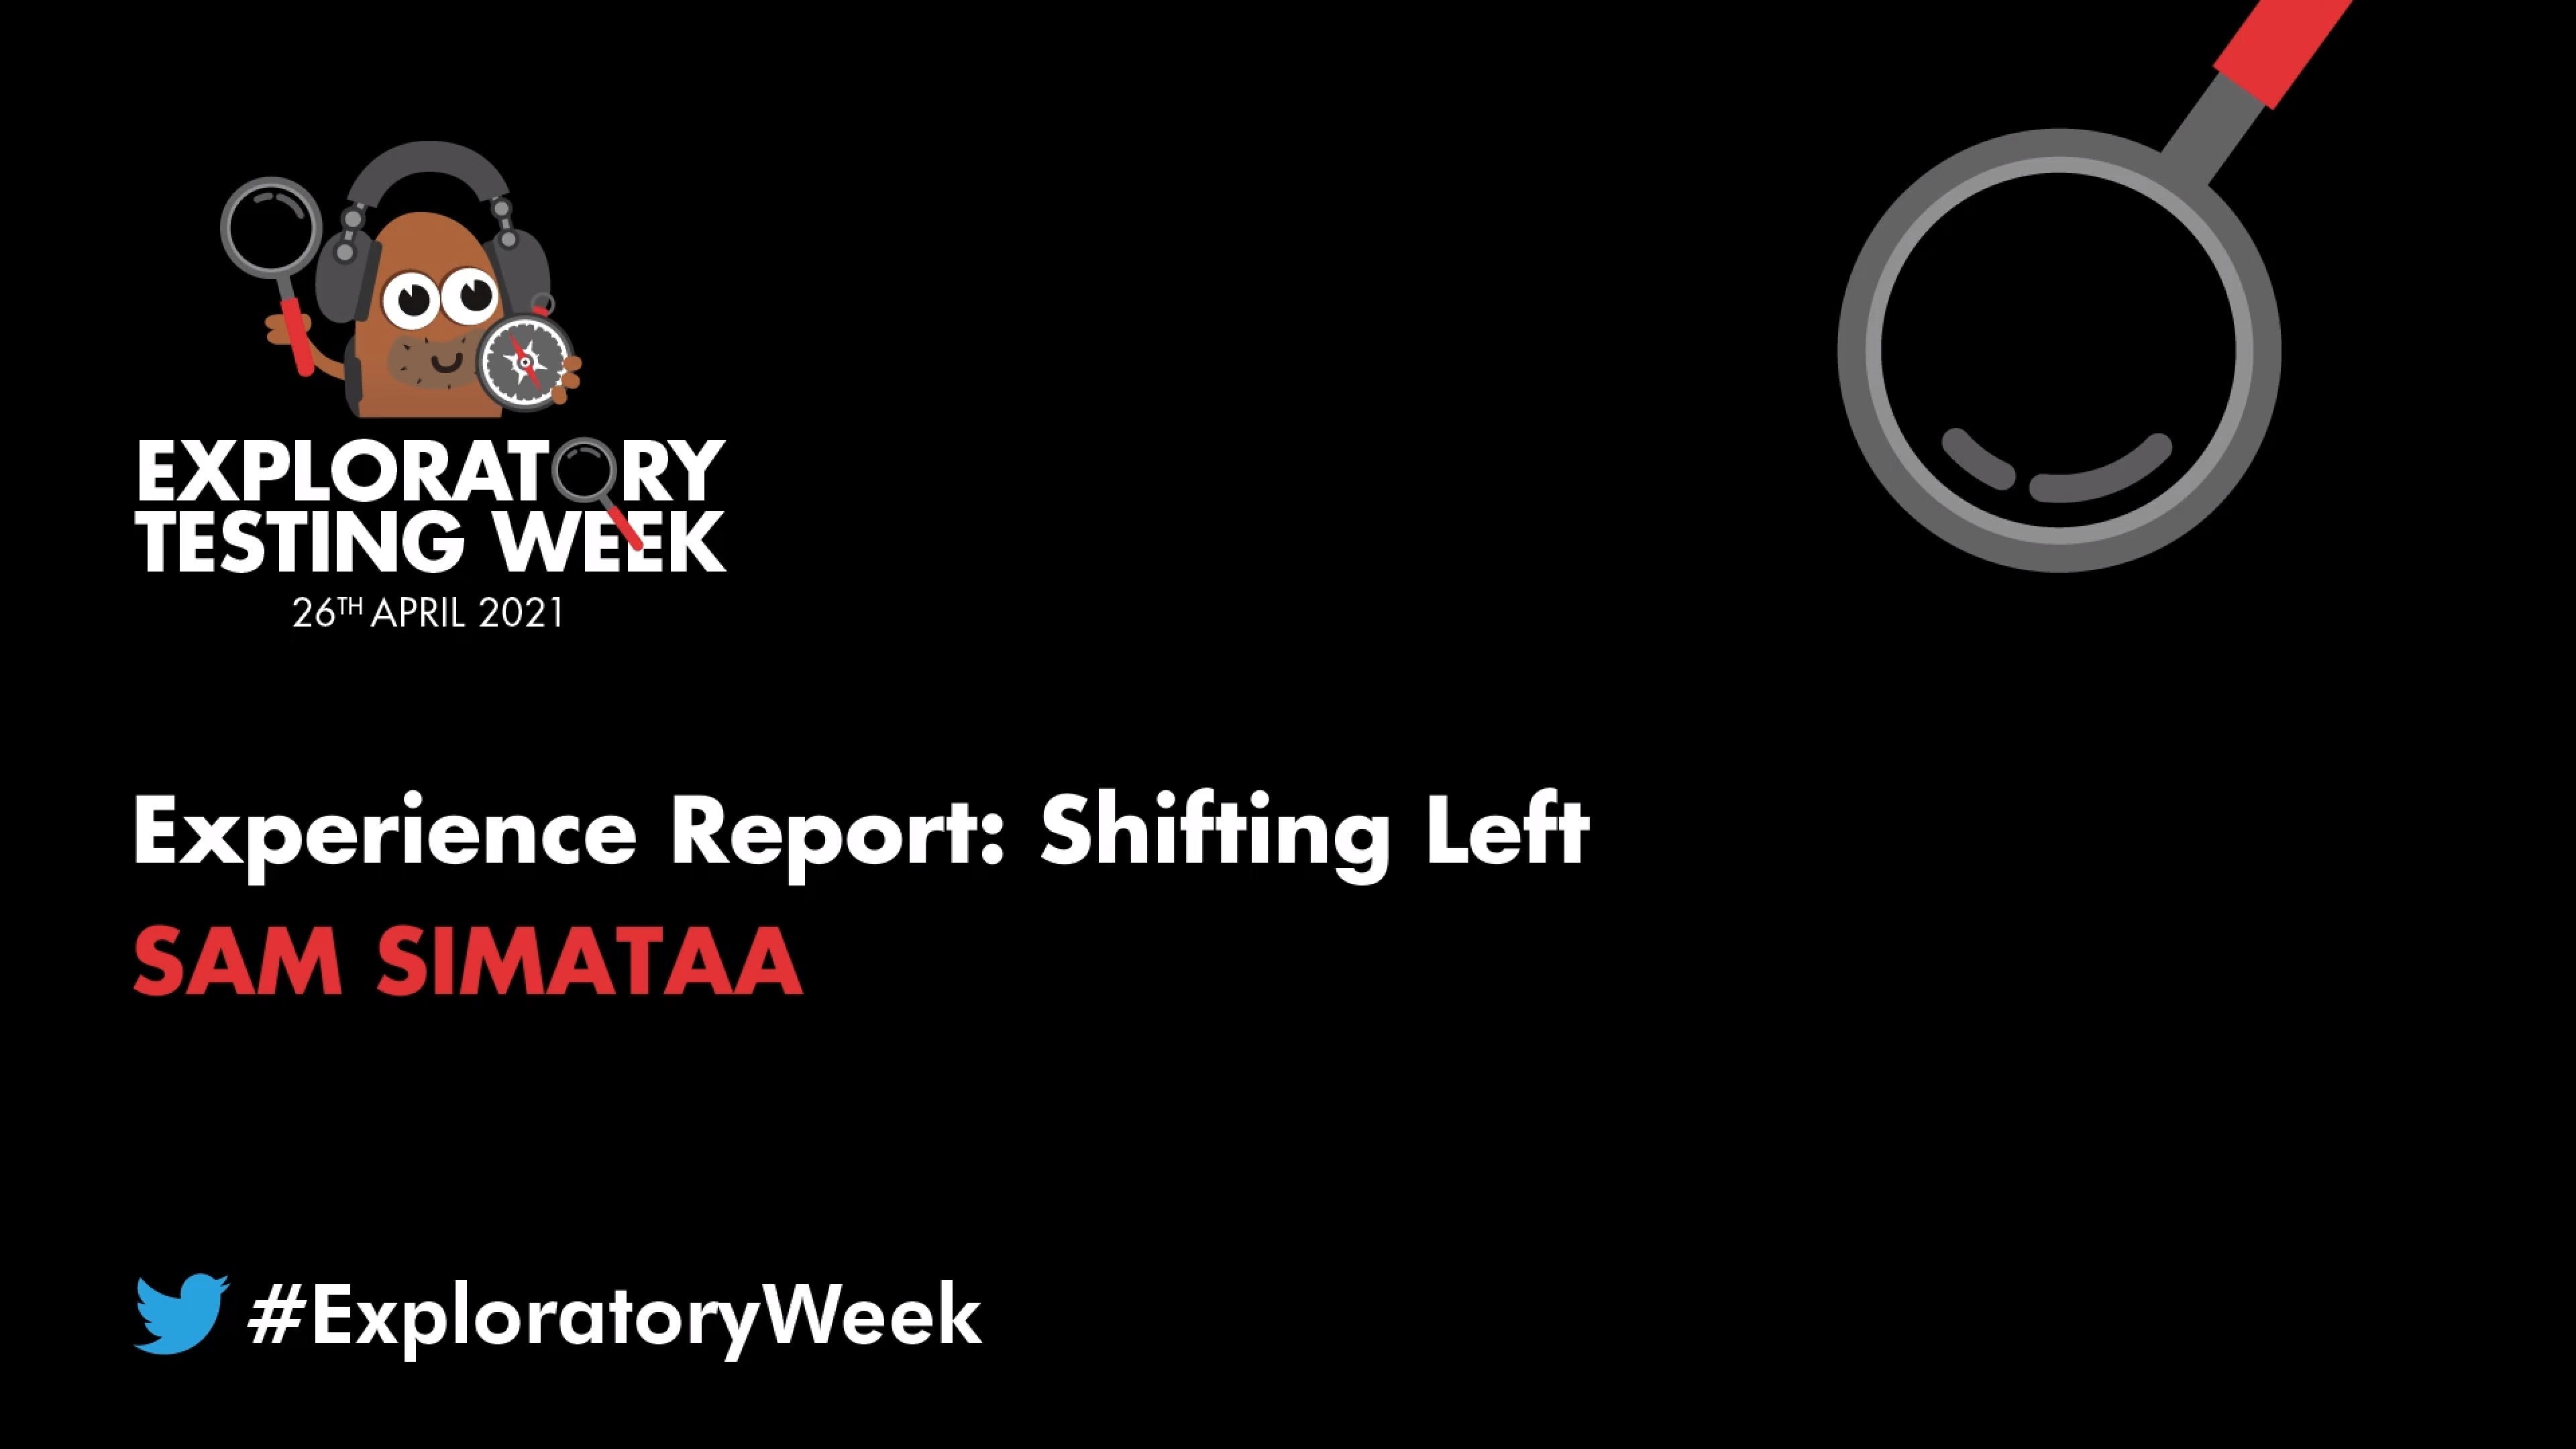 Experience Report: Shifting Left Challenge with Sam Simataa